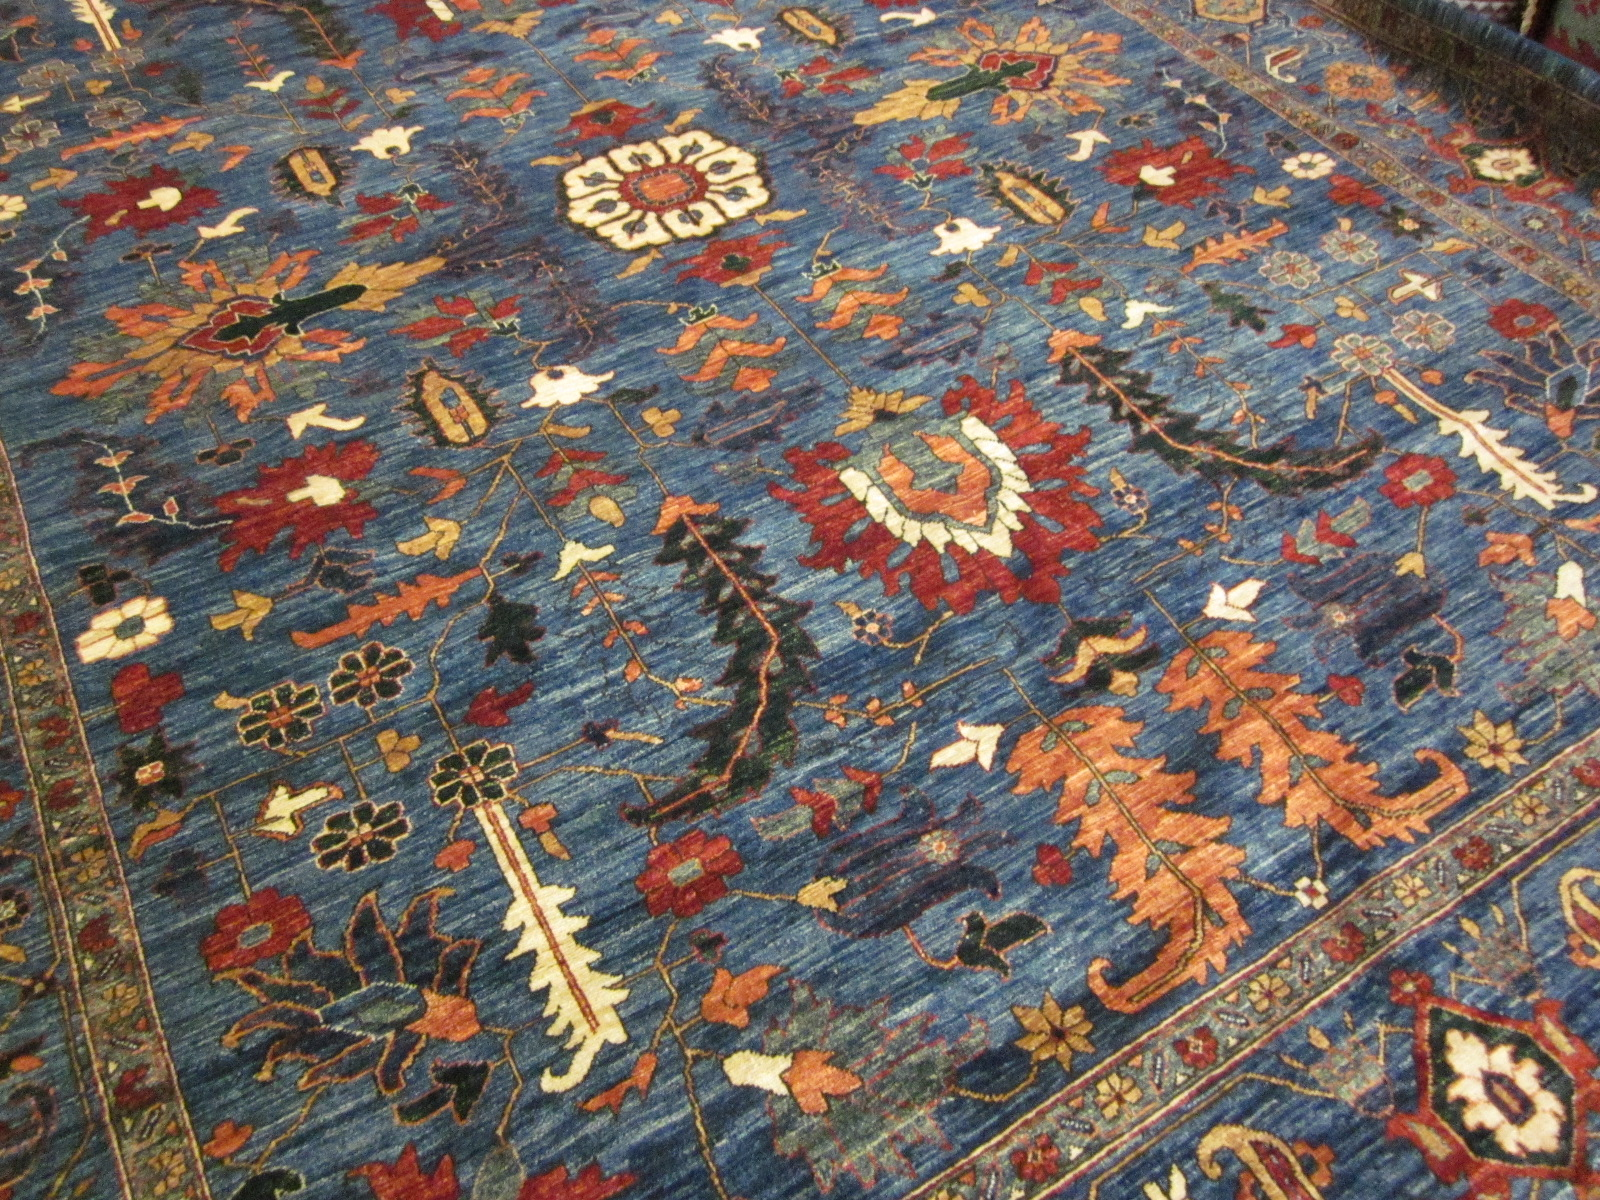 paradise oriental rugs inc gallery phone 137 no main st sebastopol ca we ship all over the us questions welcome call today